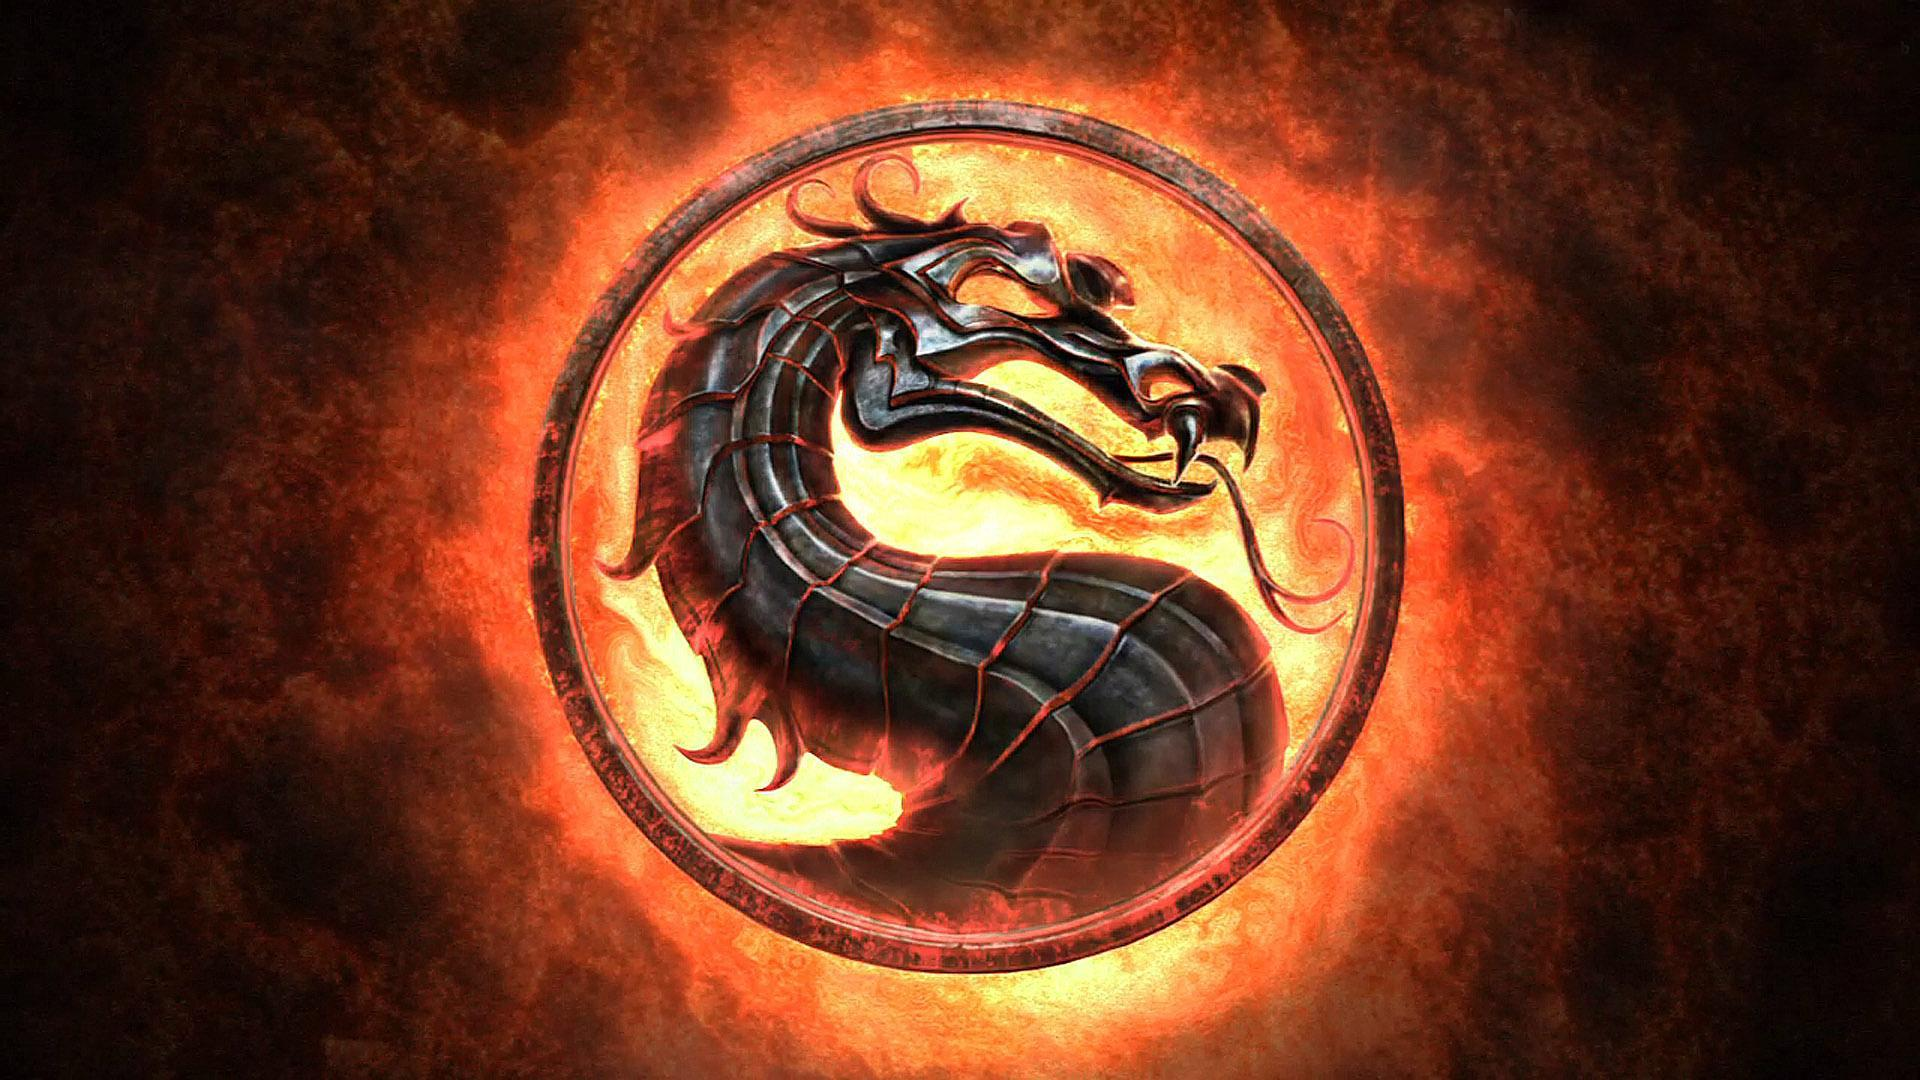 Do you know mortal kombat? Plz comment